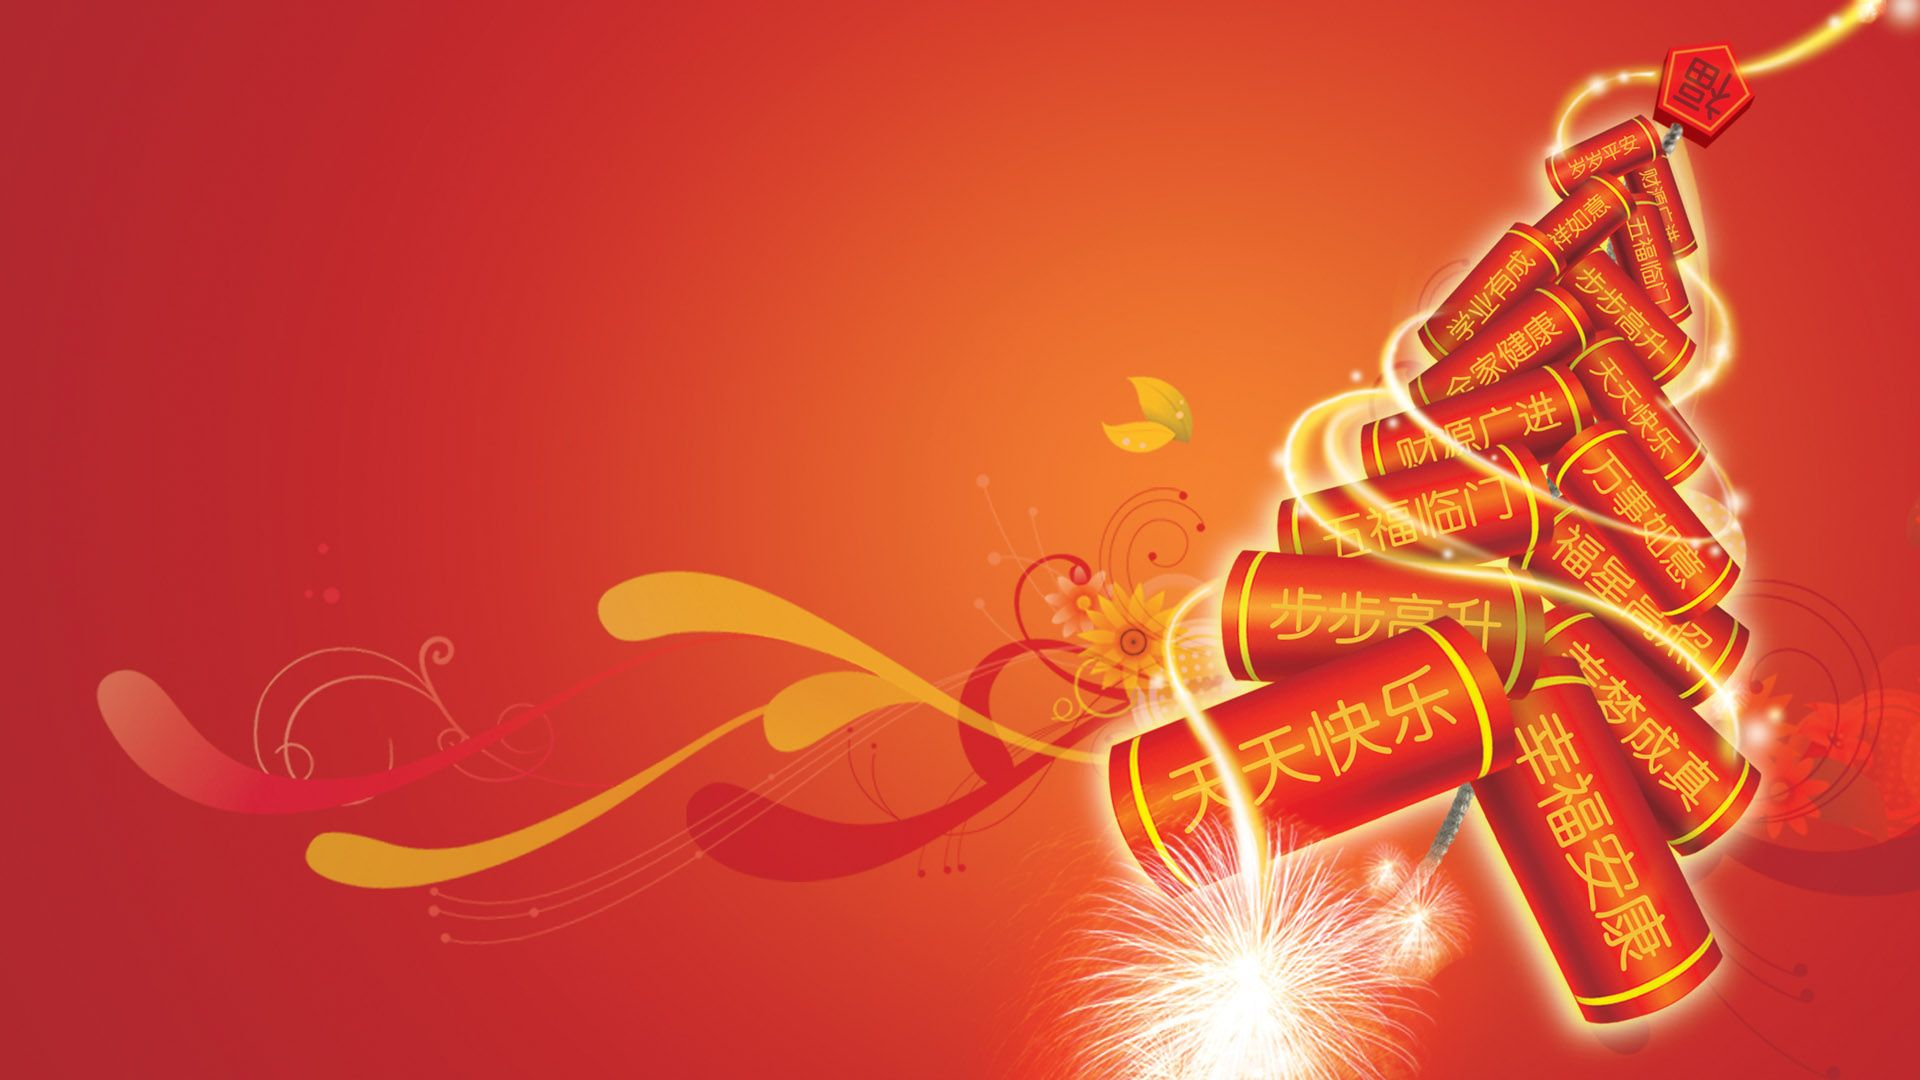 chinese happy new year desktop wallpapers 2017 | chinese new year